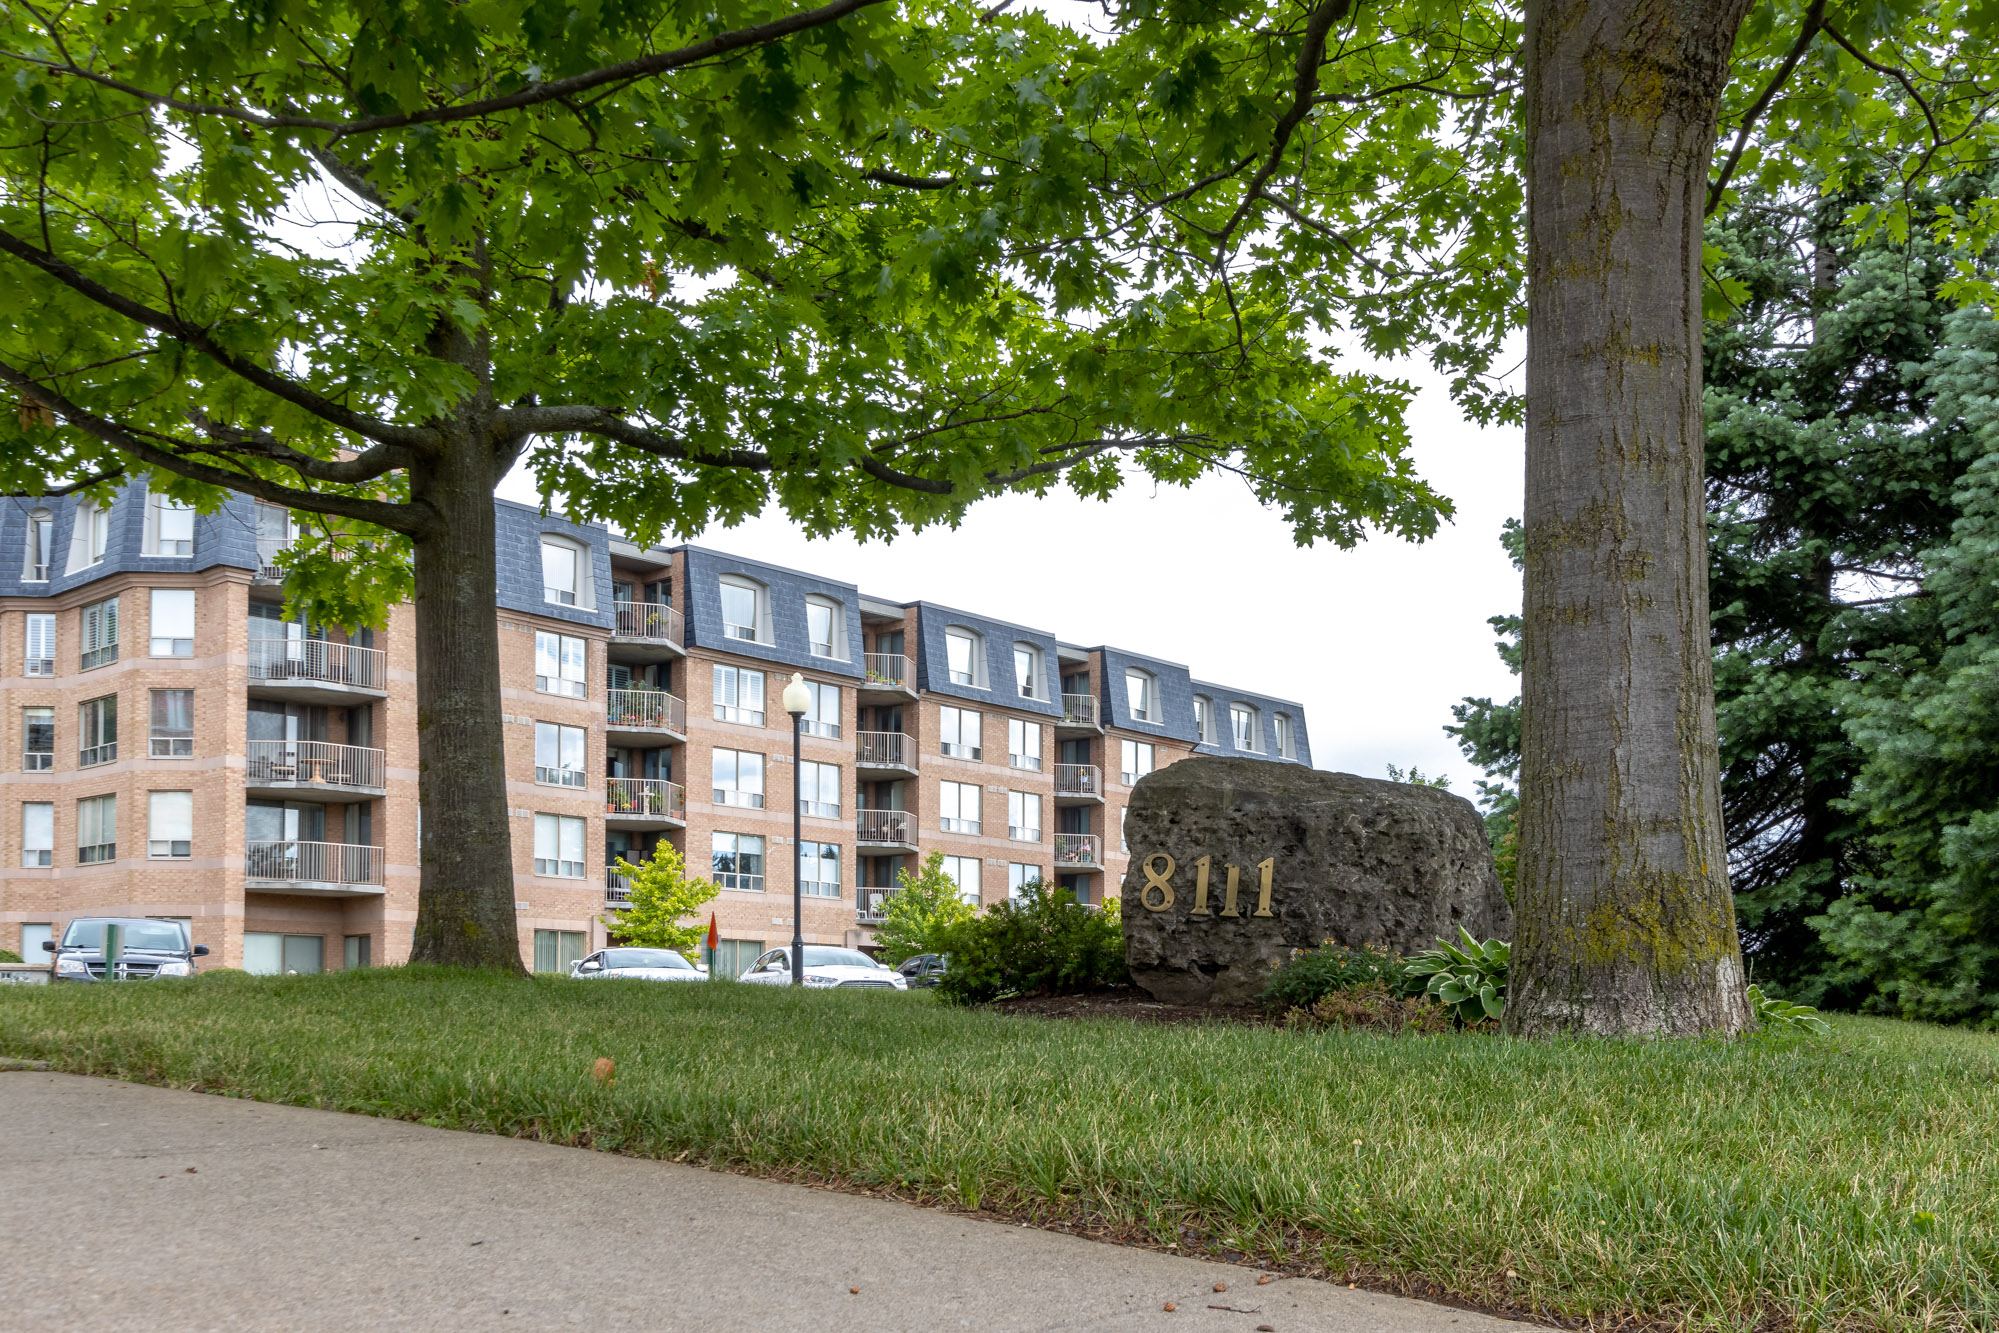 Property image for #320 – 811 Forest Glen Drive, Niagara Falls